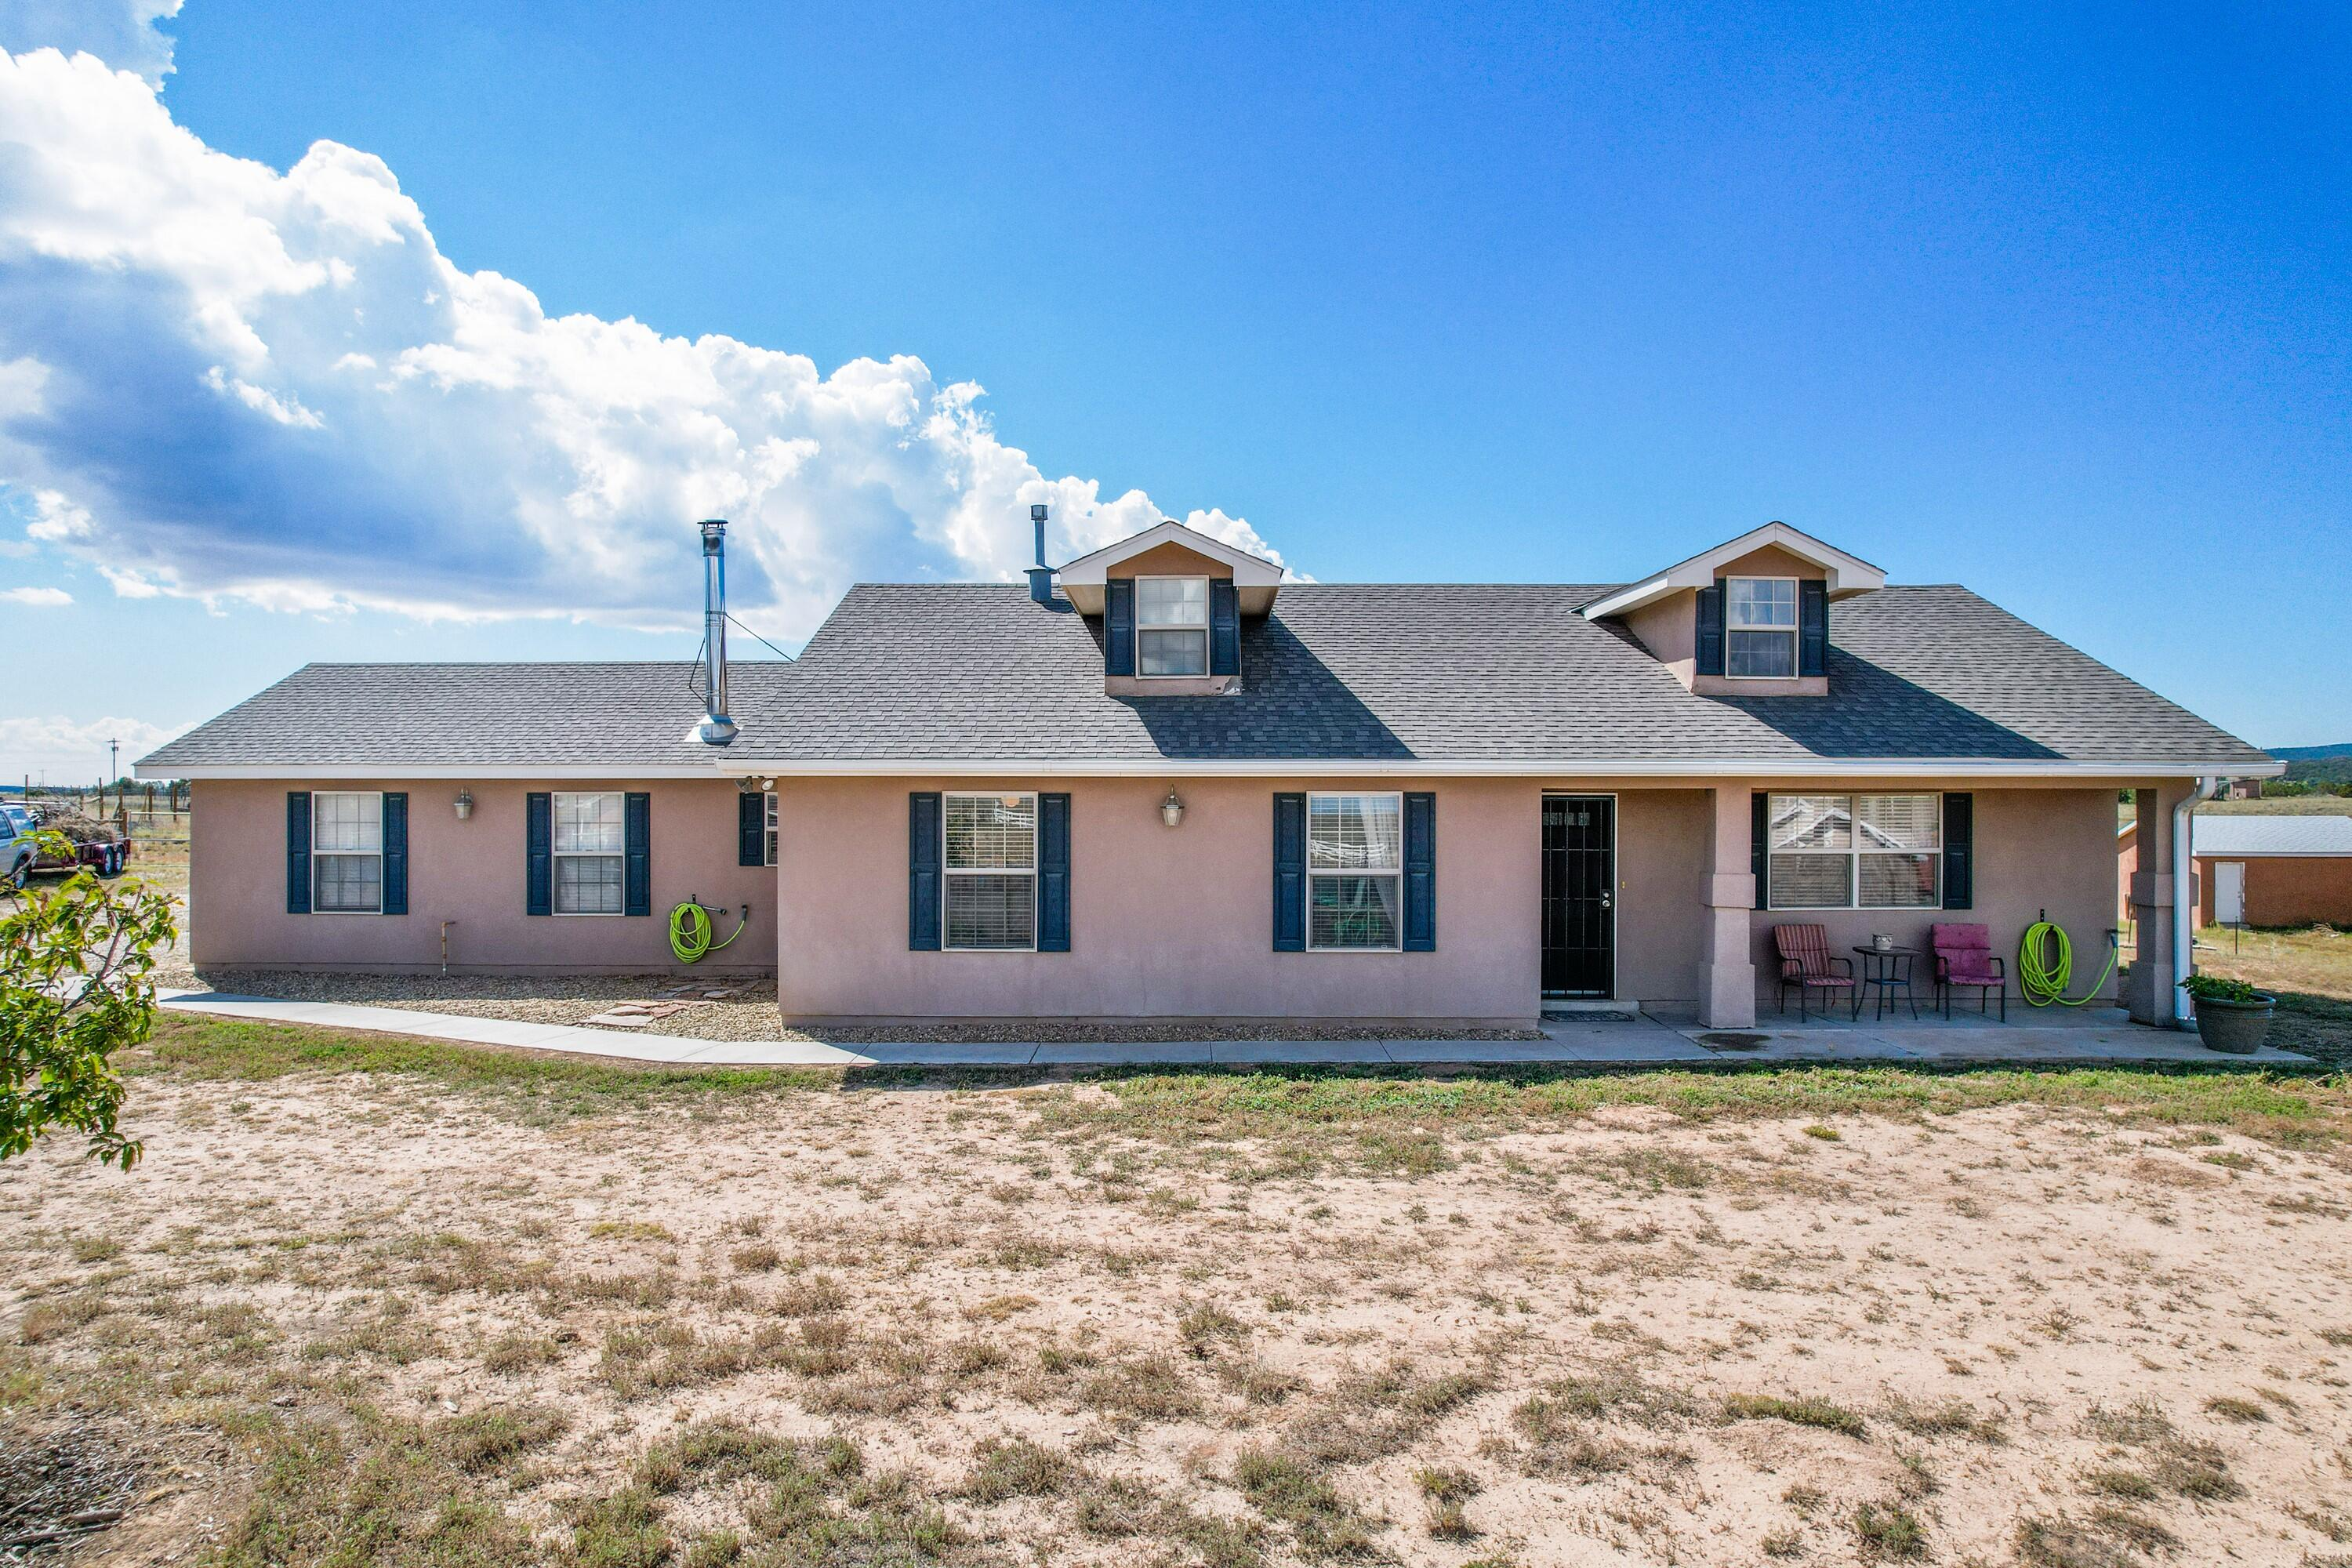 Come visit us at this charming 3 bedroom 2 bath ranchette! Only 30 miles from Albuquerque with easy access to I-40 this is the perfect escape form city life.